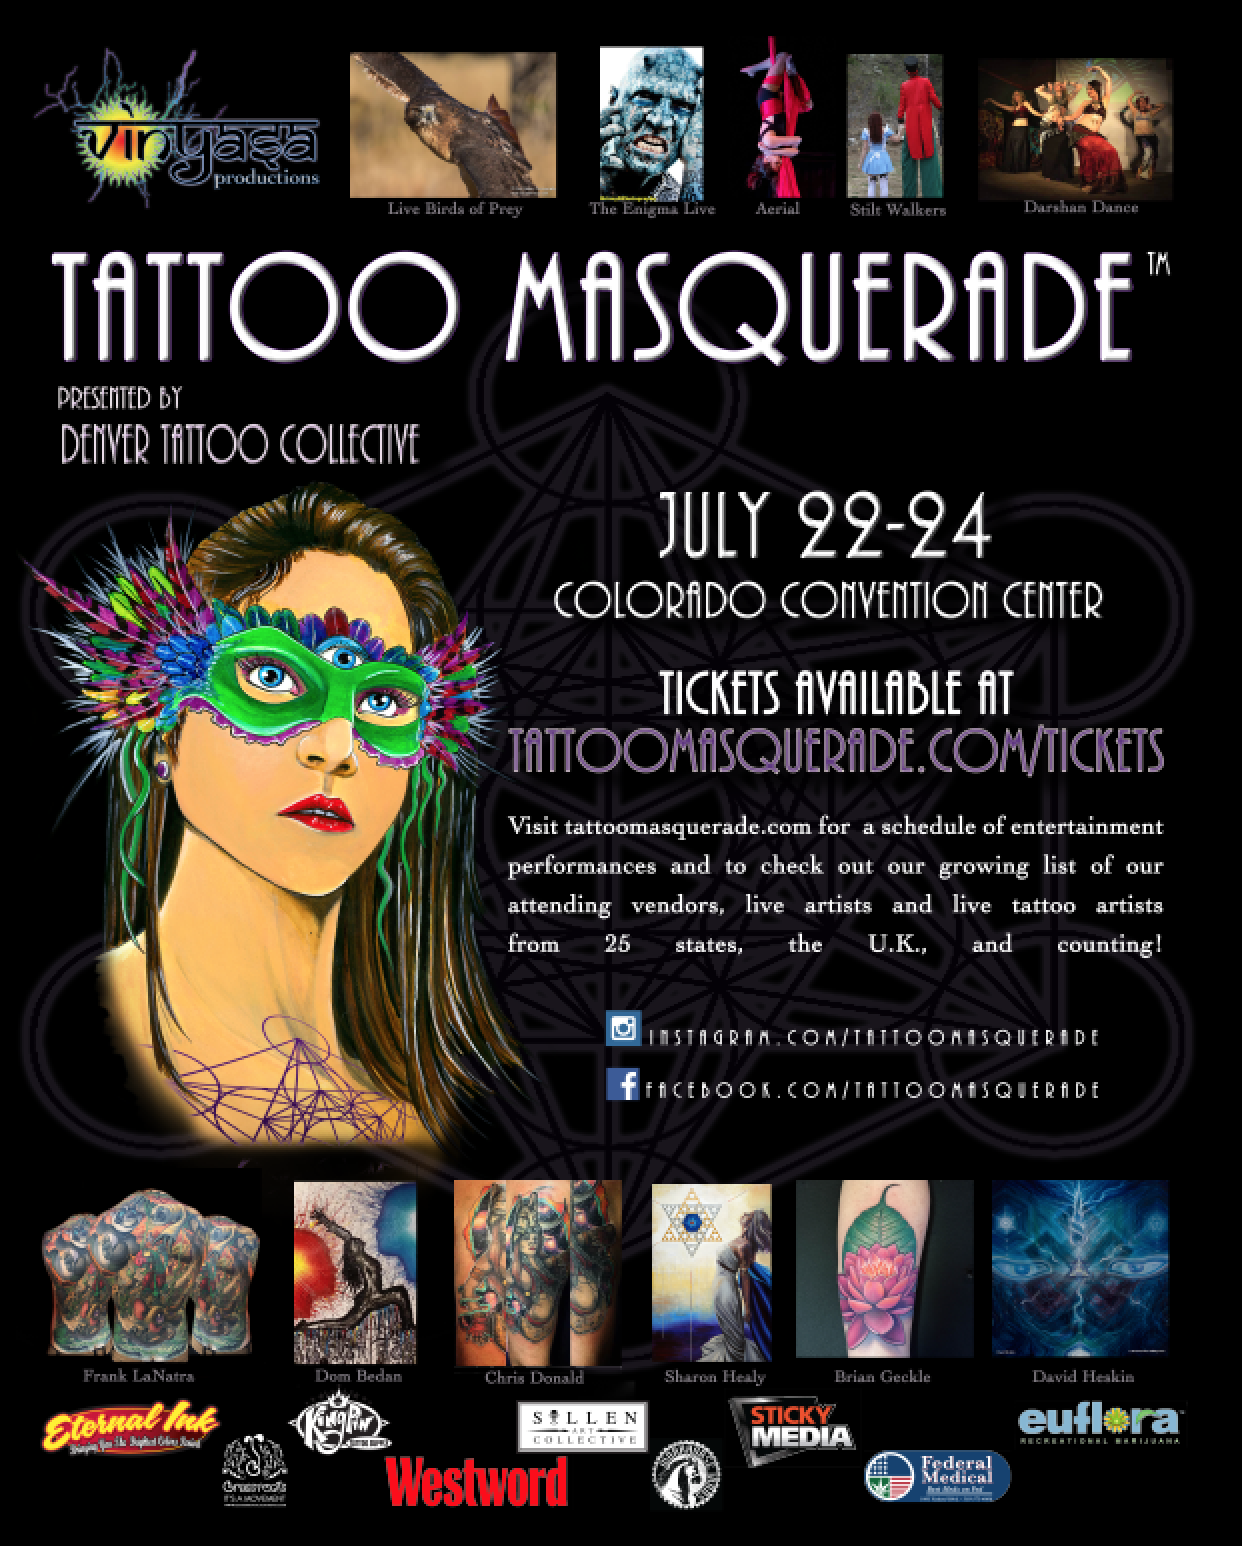 Tattoo Masquerade approaches!